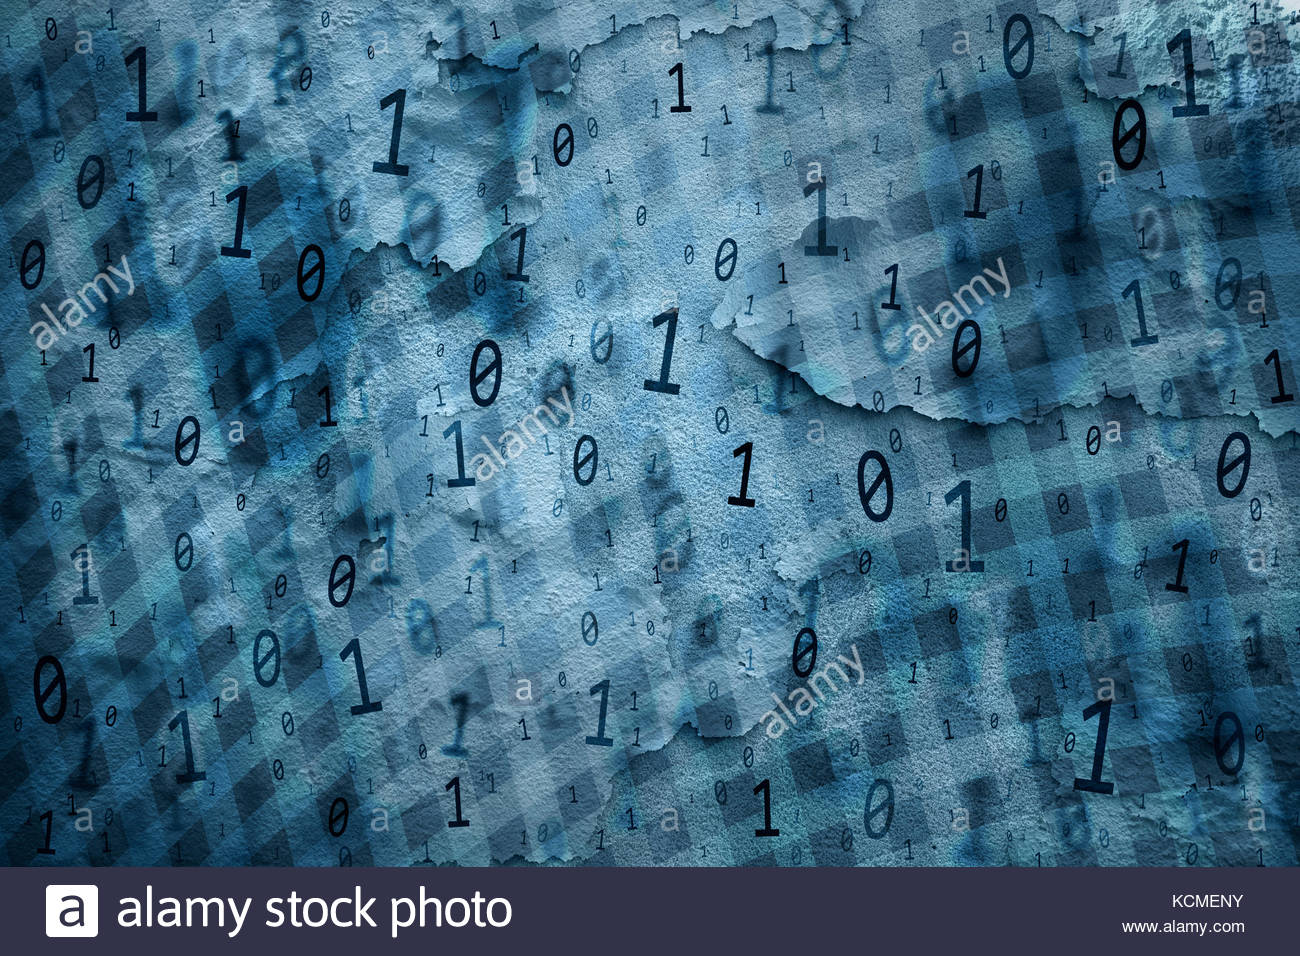 Turquoise blue colored binary numbers data on cracked and damaged background. Safety concept copy space background. - Stock Image